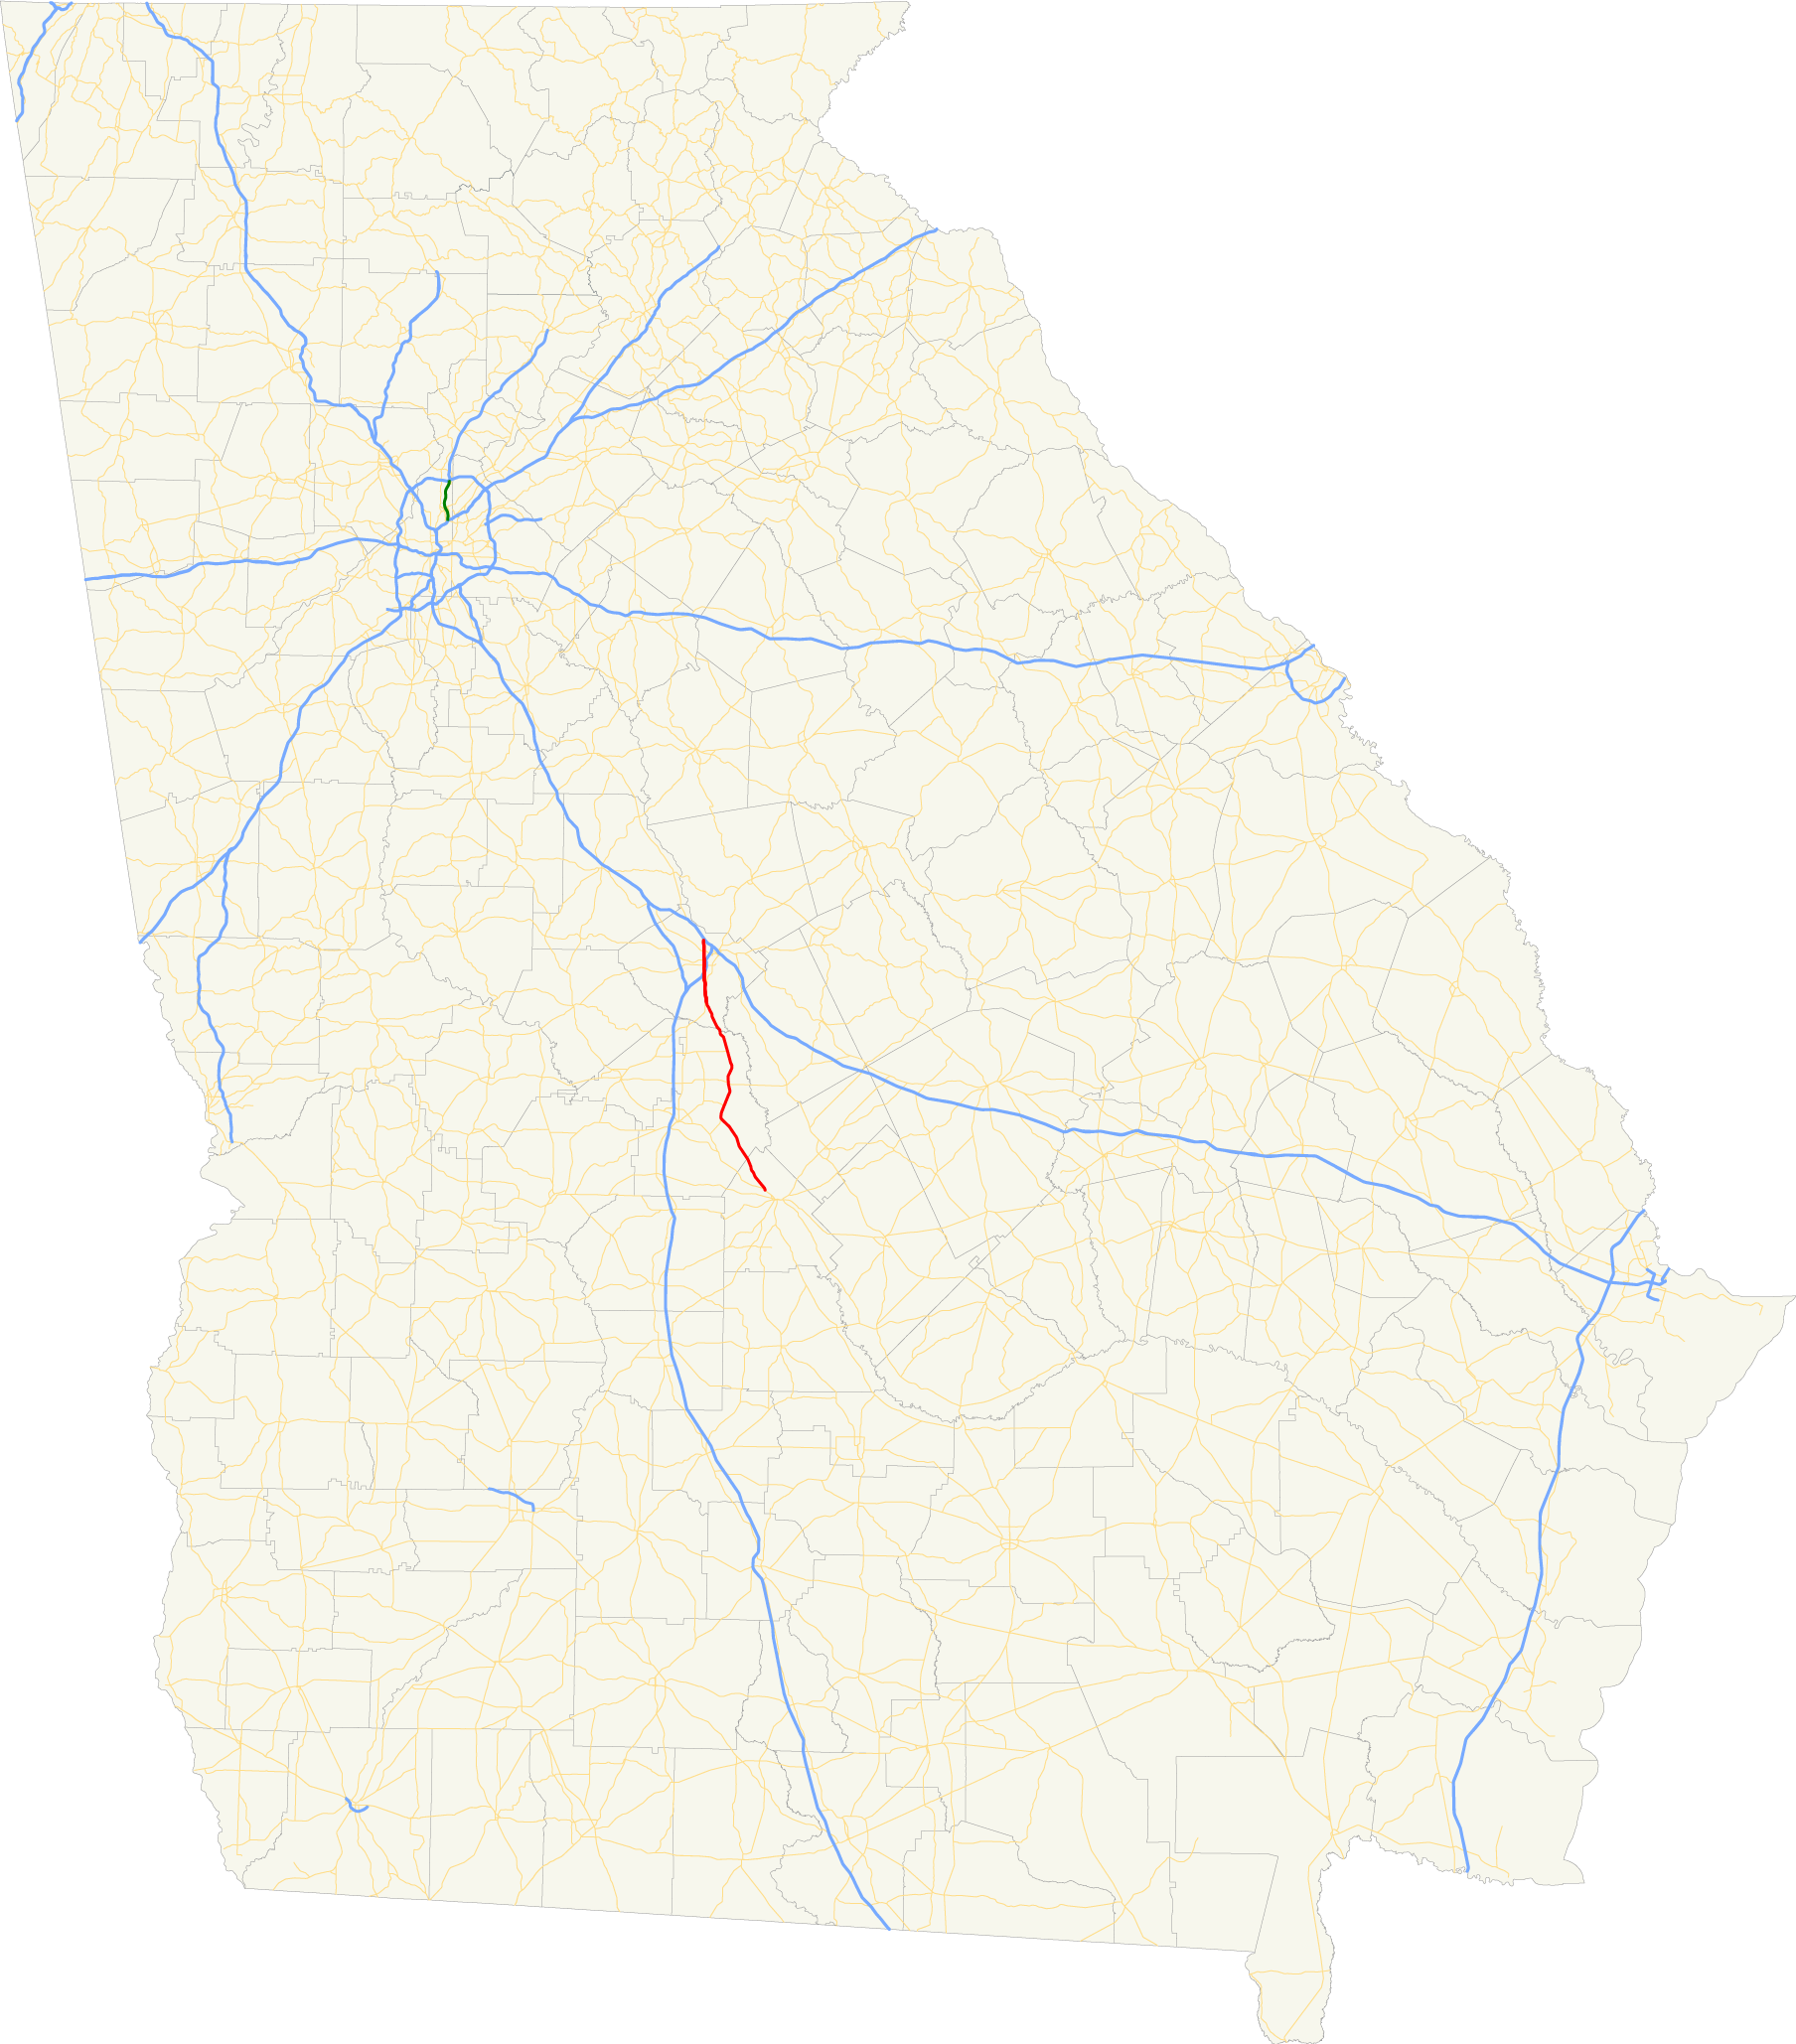 File:Georgia state route 247 map.png - Wikimedia Commons